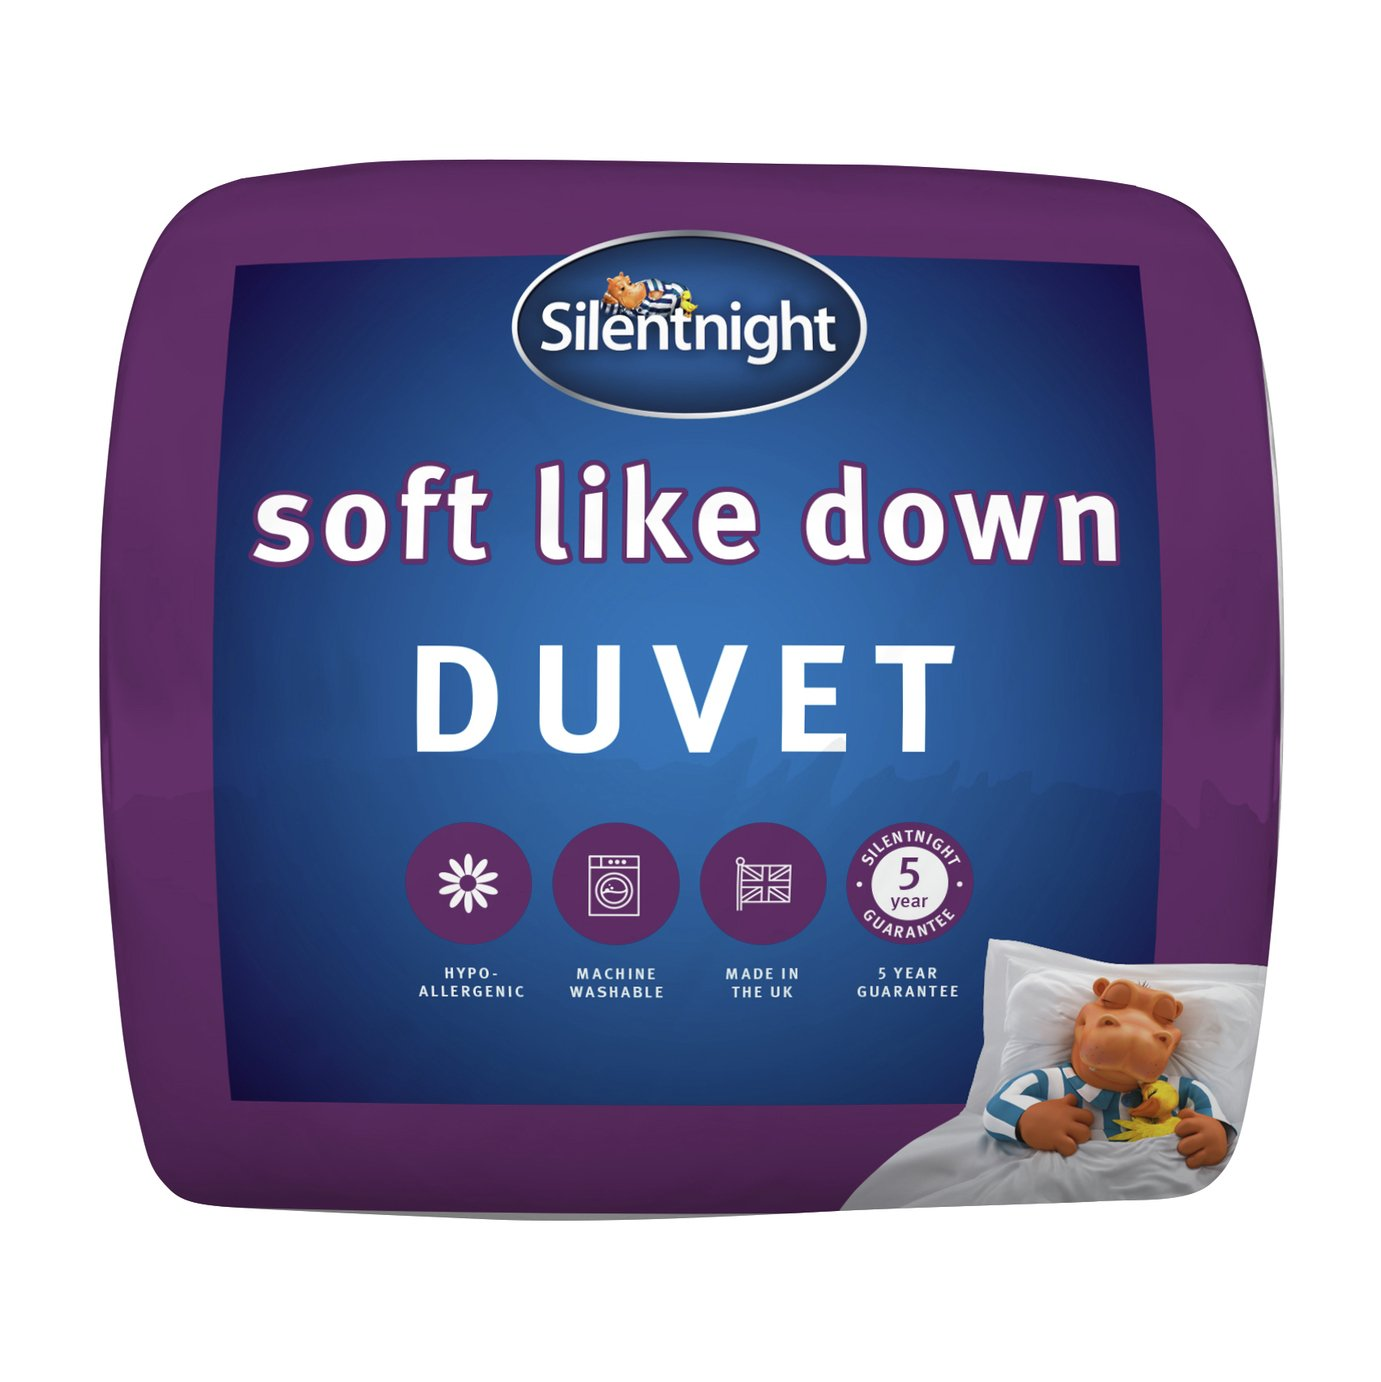 Silentnight Soft Like Down Anti-Allergy 10.5 Tog Duvet - Sgl